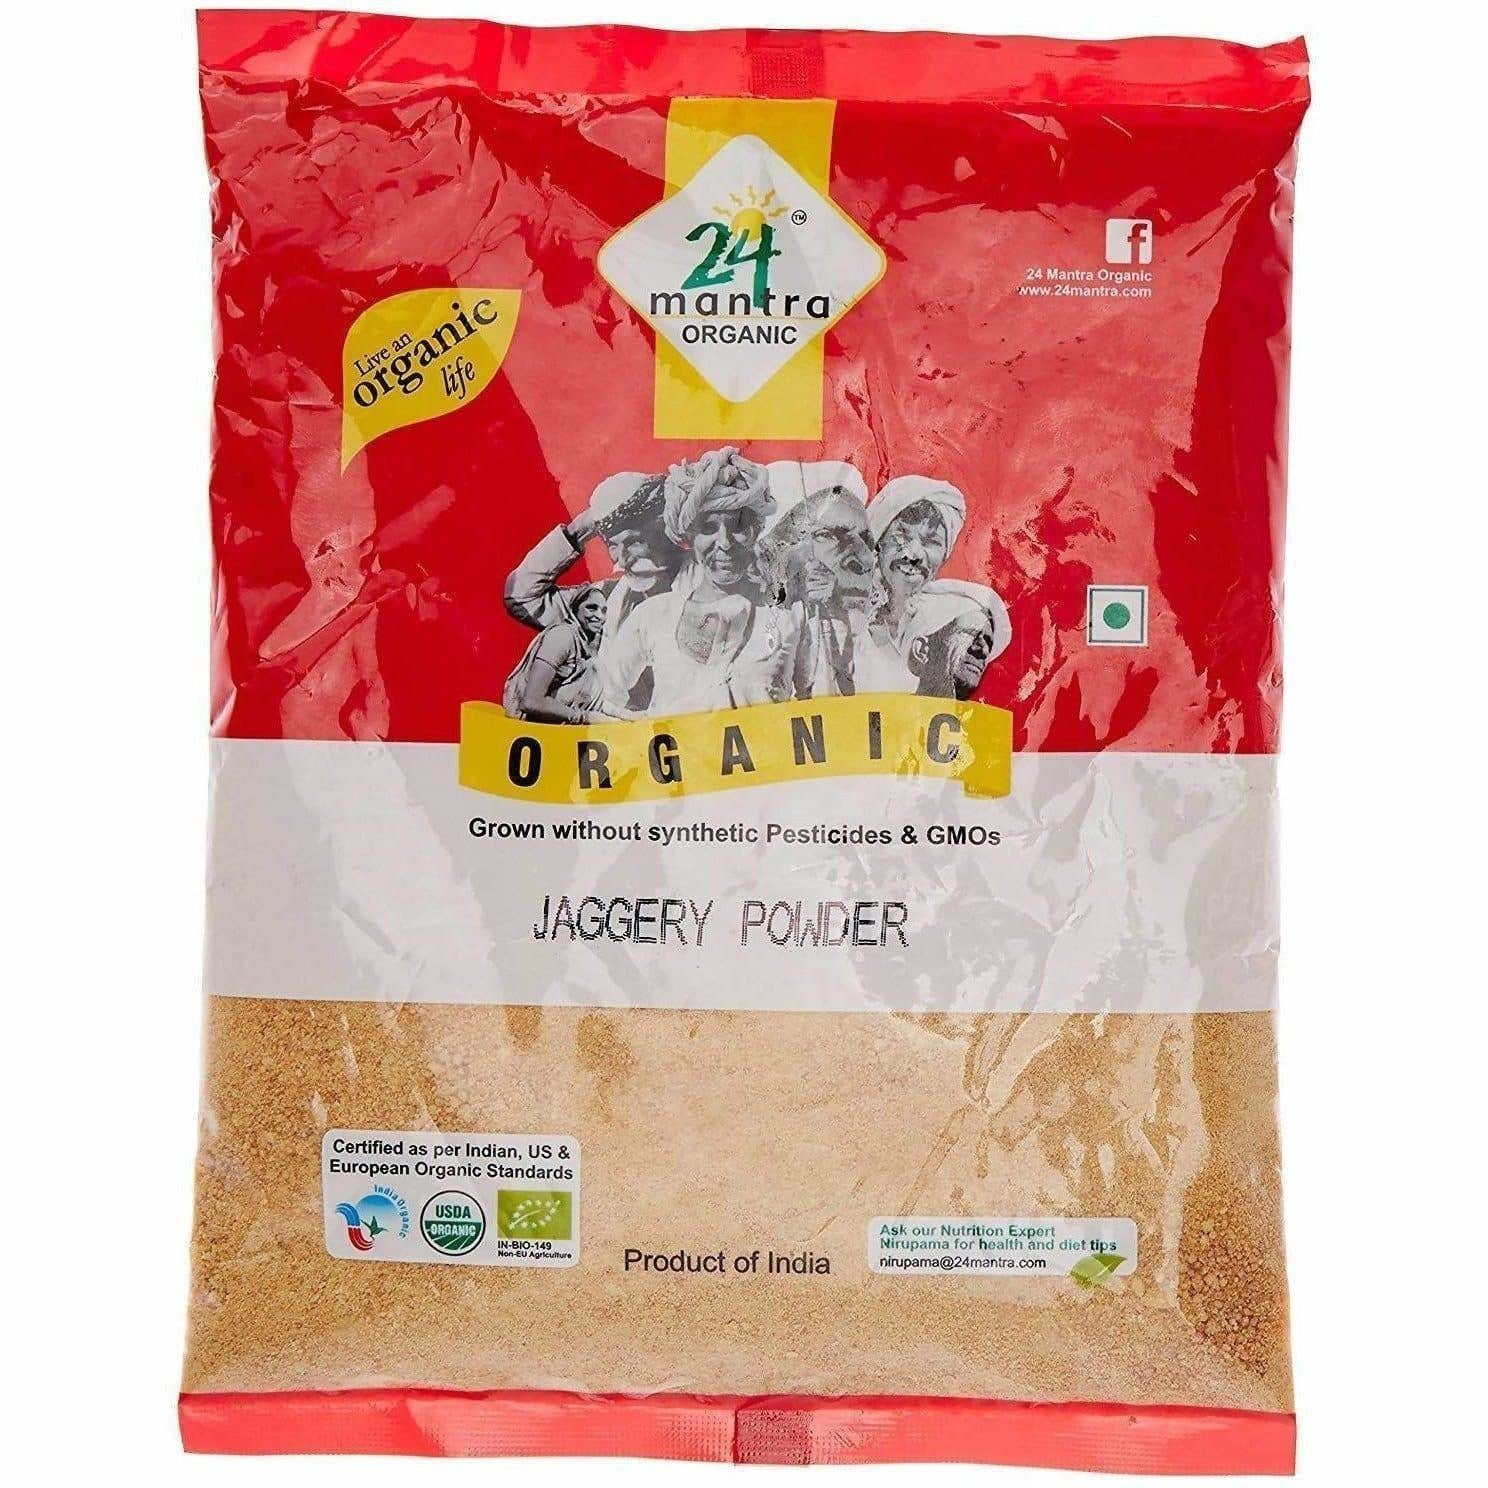 24 Mantra Organic Jaggery Powder 500gm